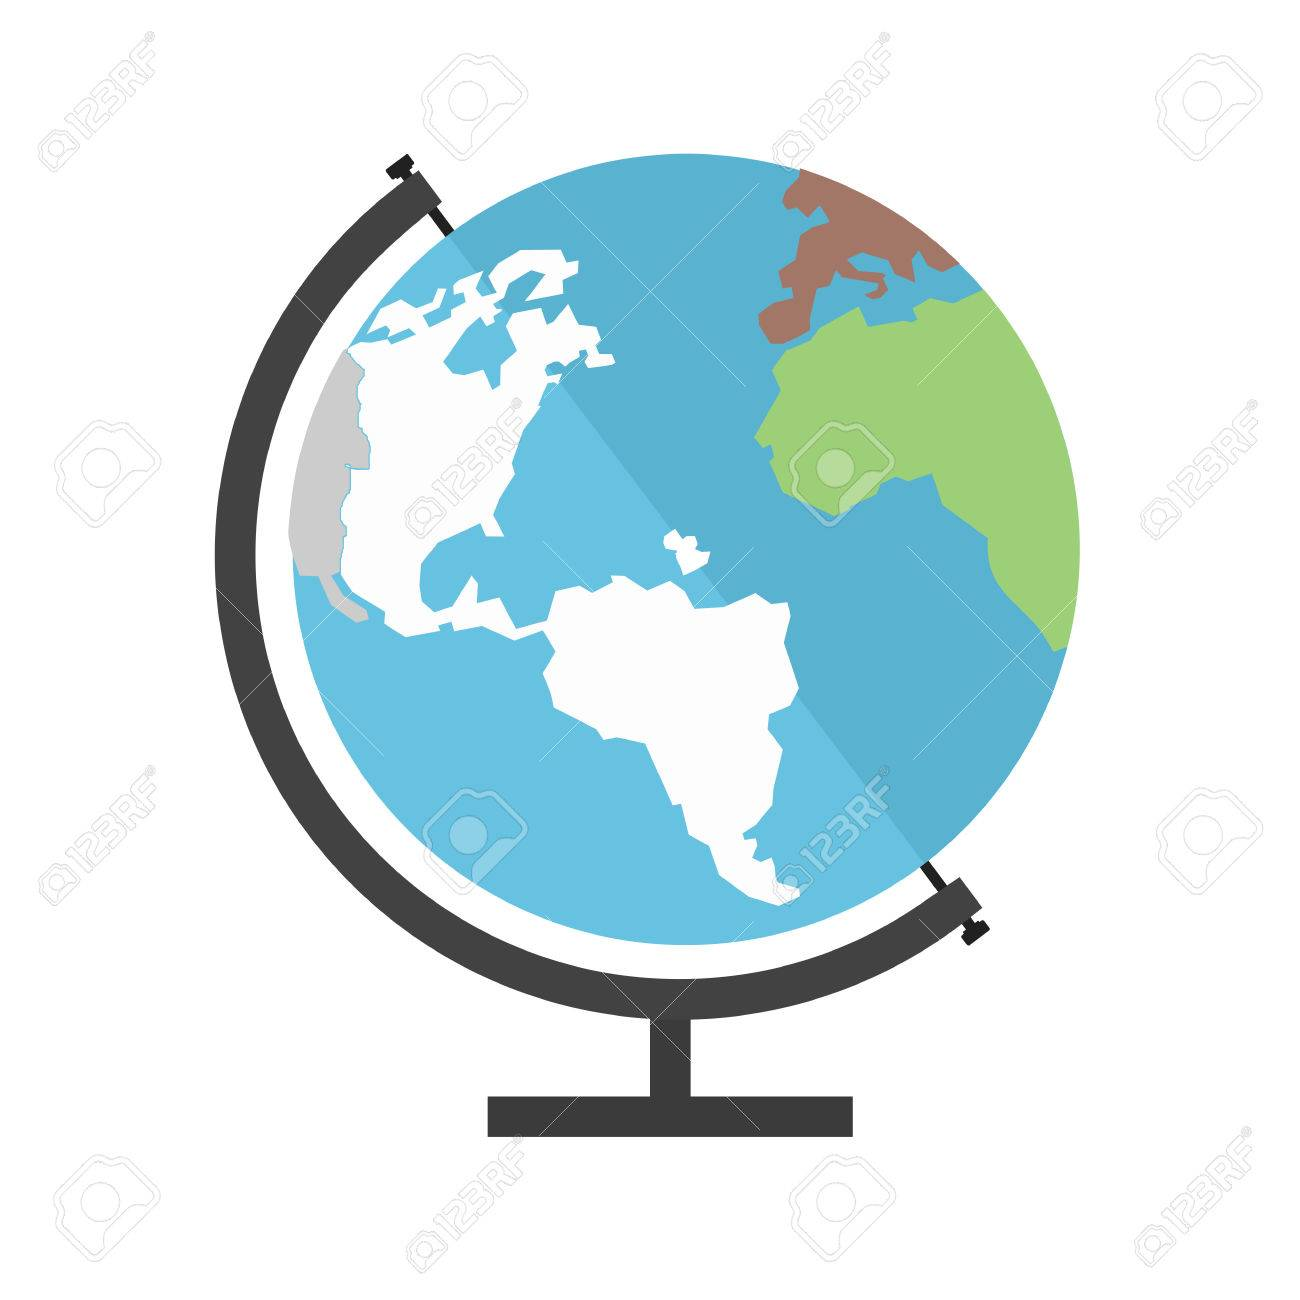 Vector globe map awesome graphic library globe earth world map icon image royalty free cliparts vectors rh 123rf com vector world map globe vector globe map gumiabroncs Image collections